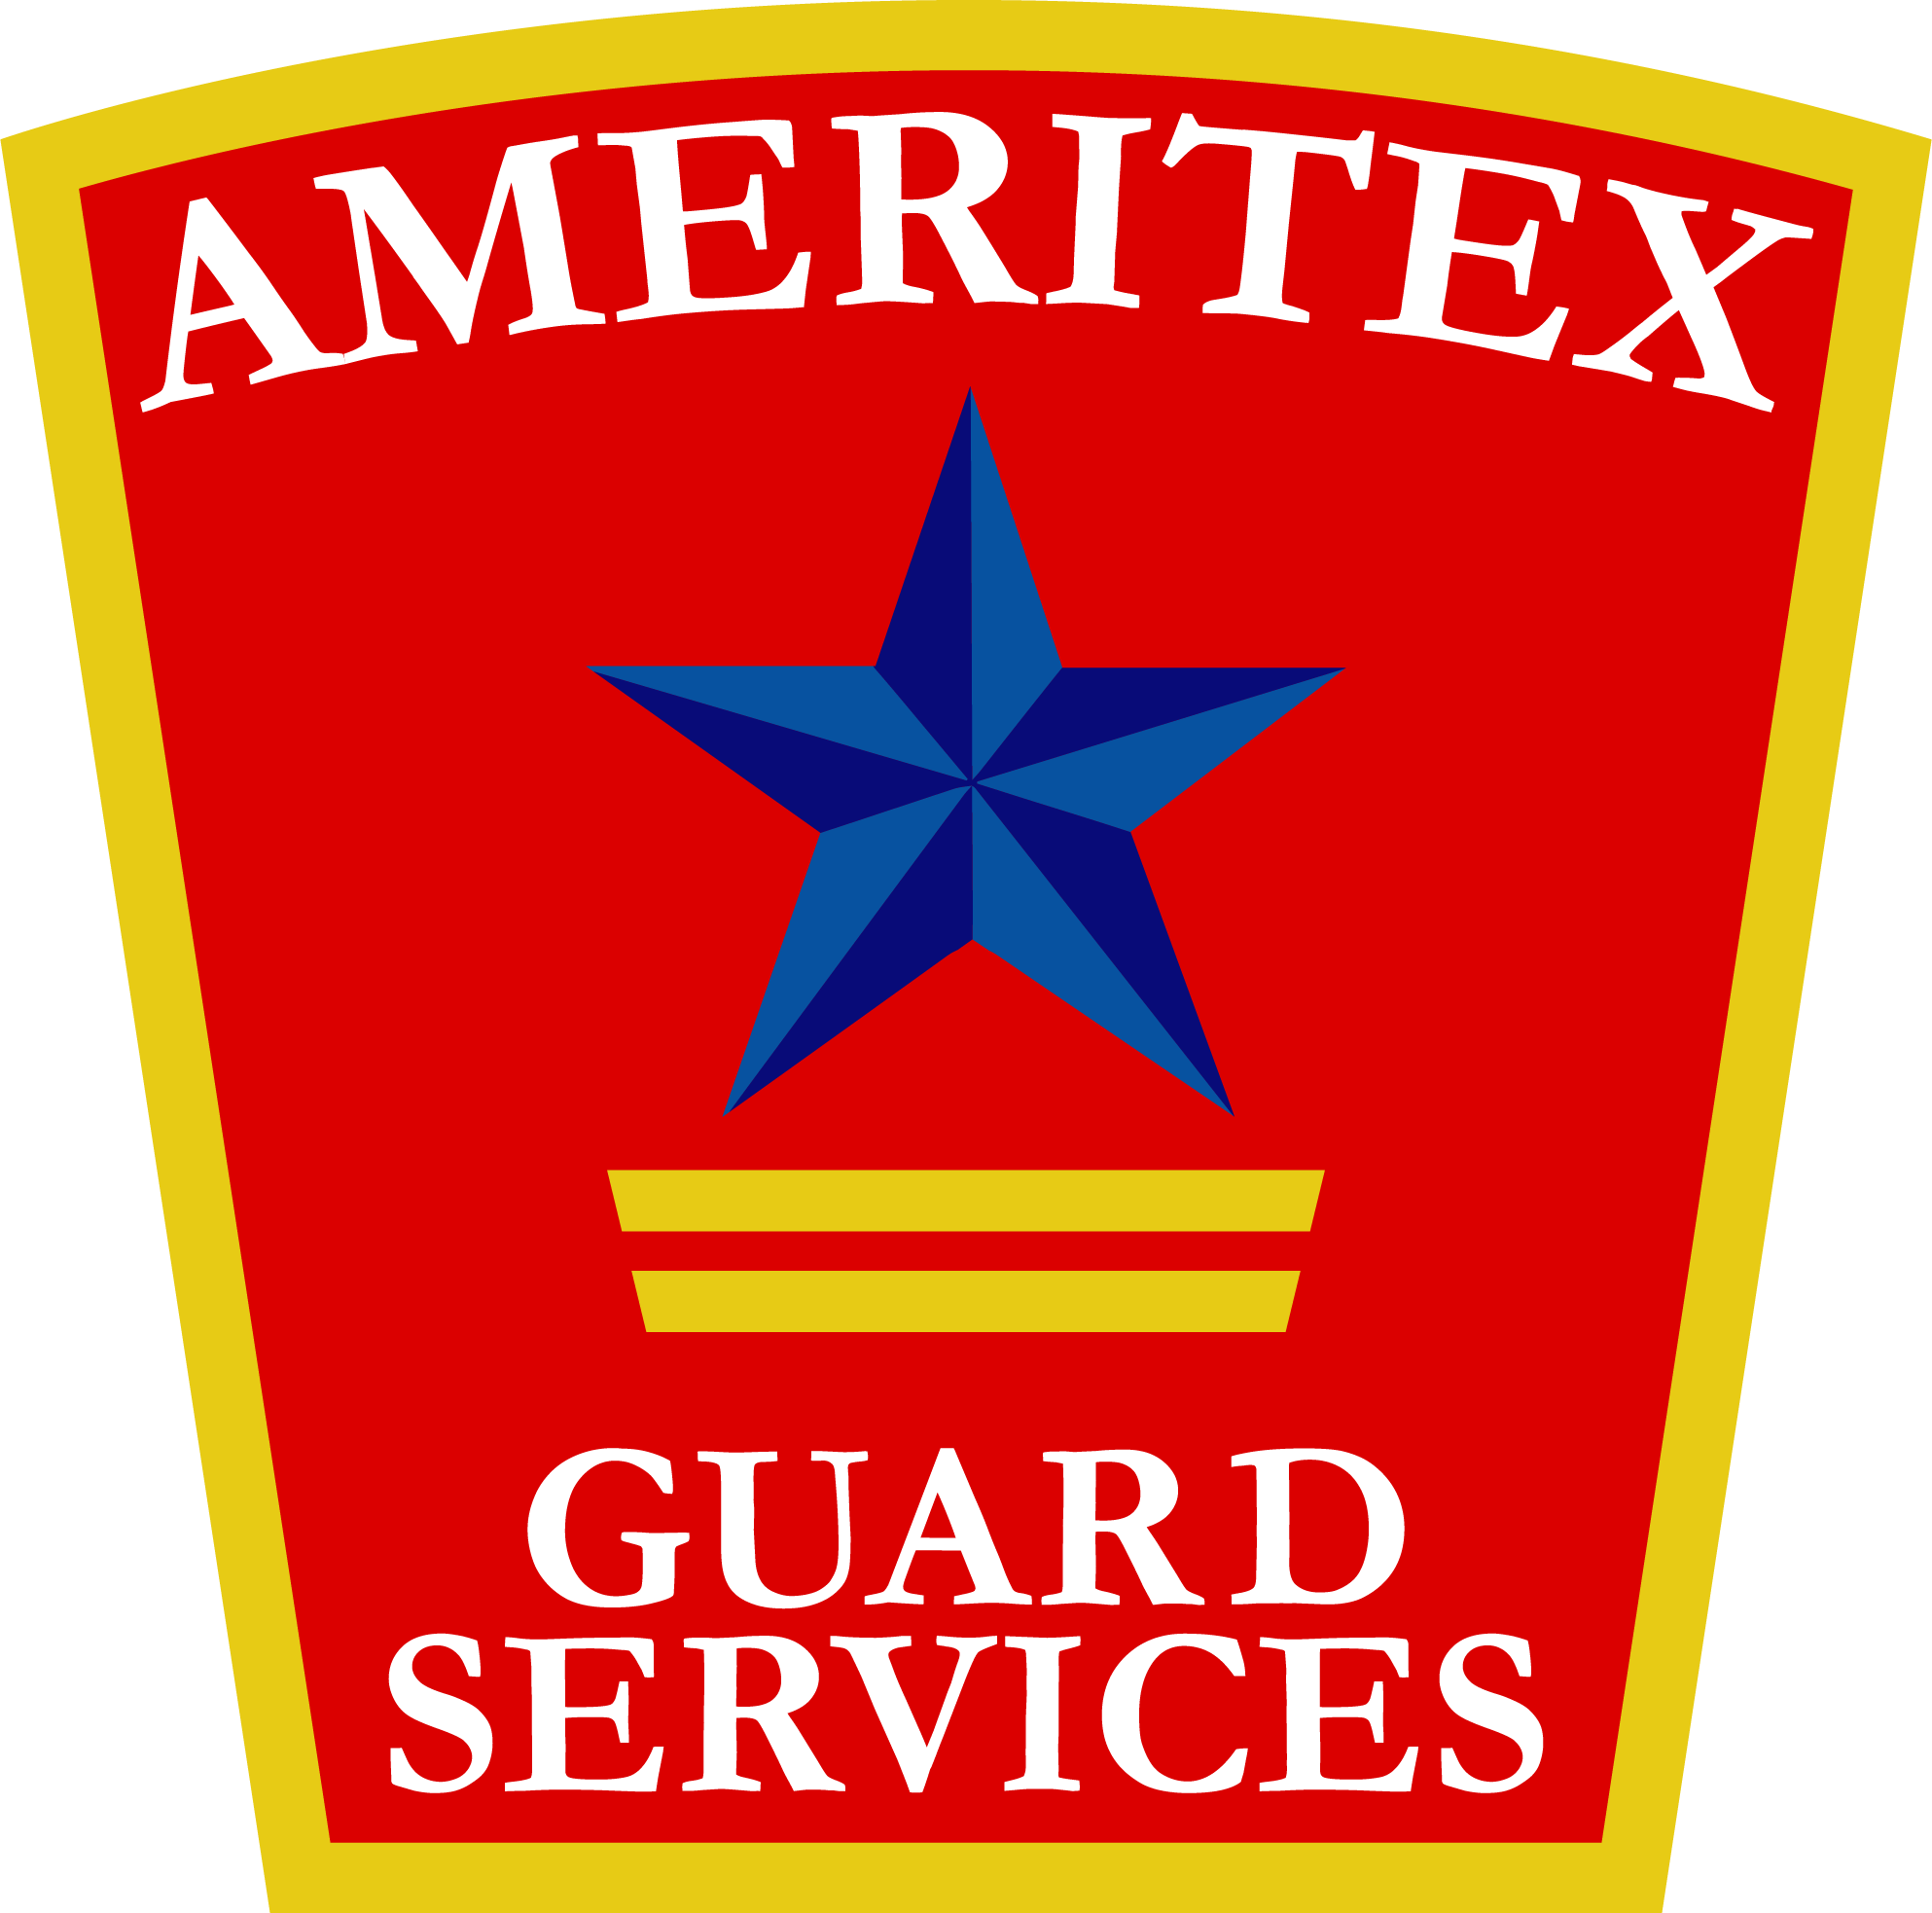 Ameritex Guard Services – The Right Office Everytime